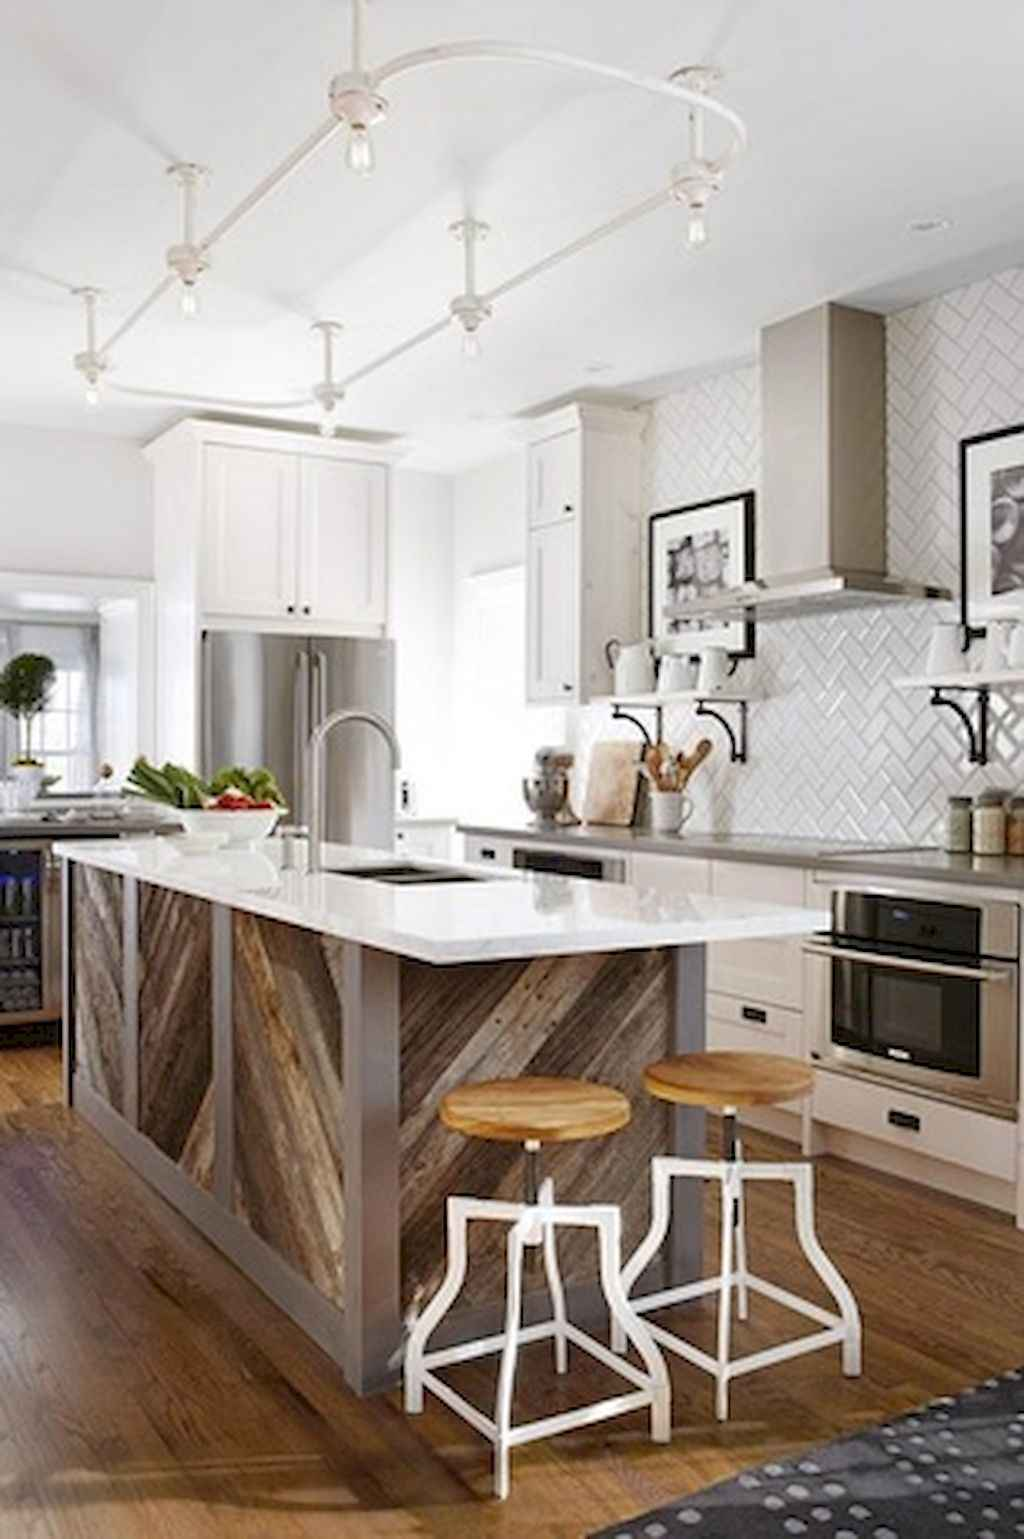 Top 60 eclectic kitchen ideas 19 for Kitchen ideas eclectic